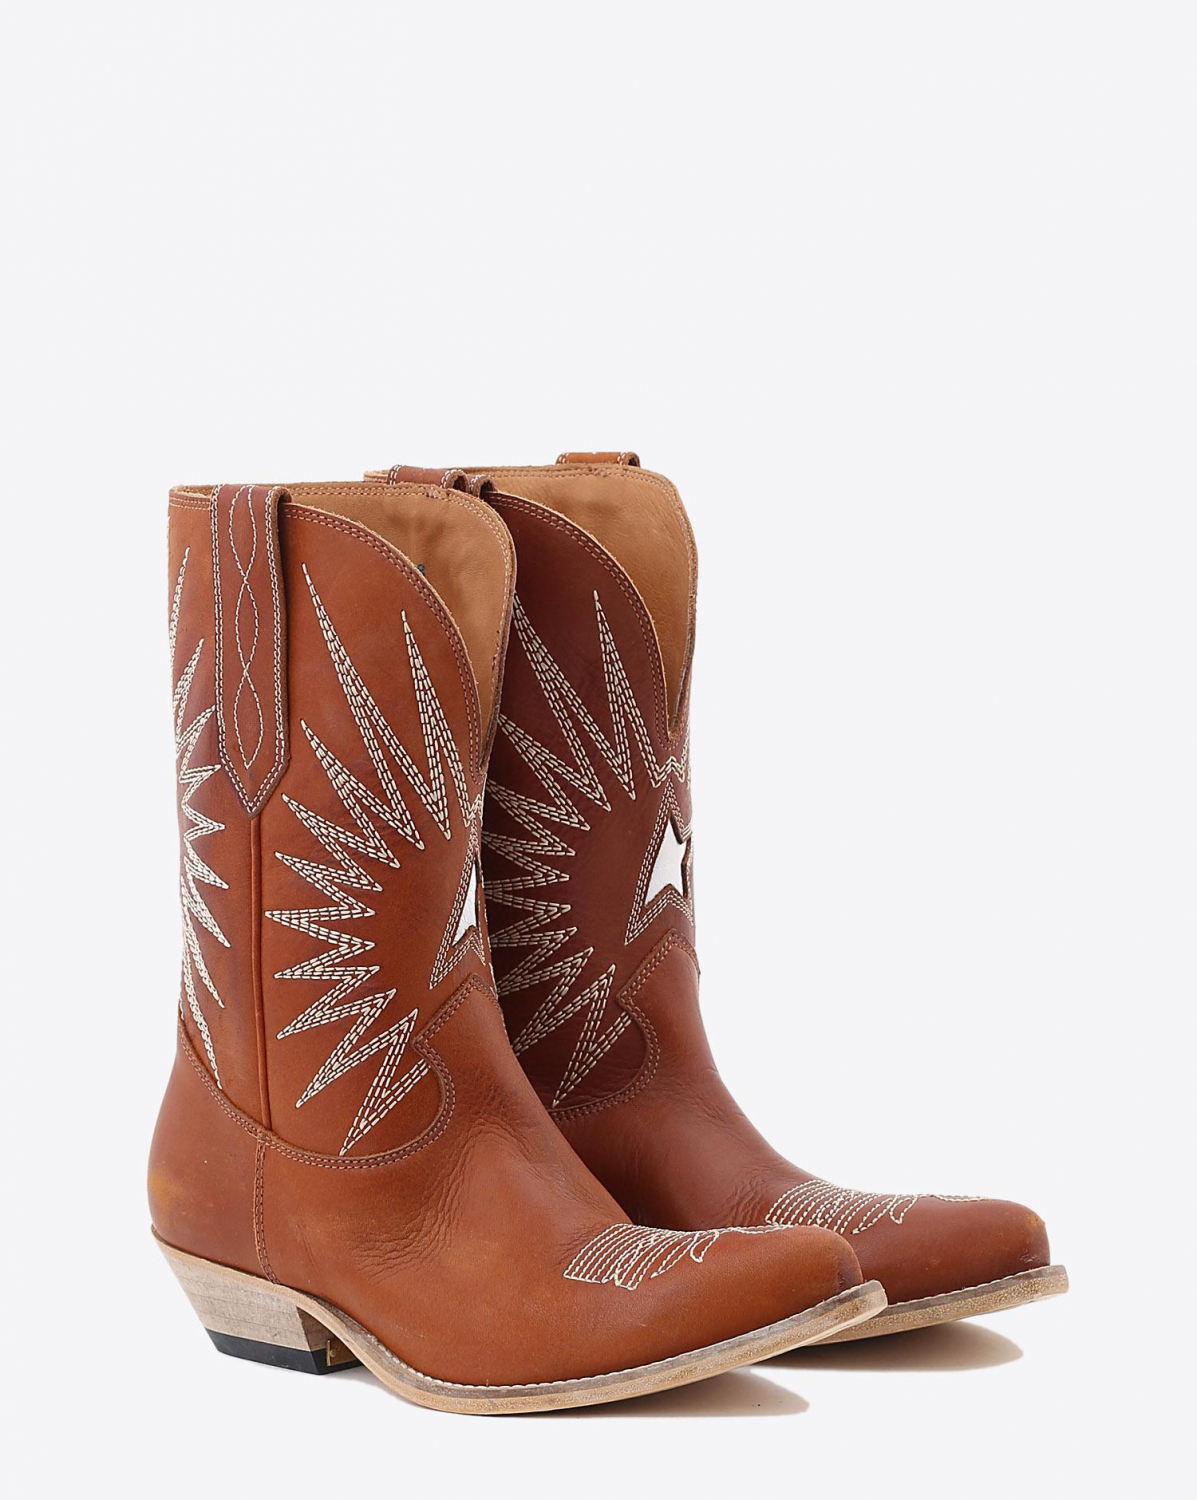 Golden Goose Woman Chaussures Collection Boots Wish Star Low - Cuoio Leather